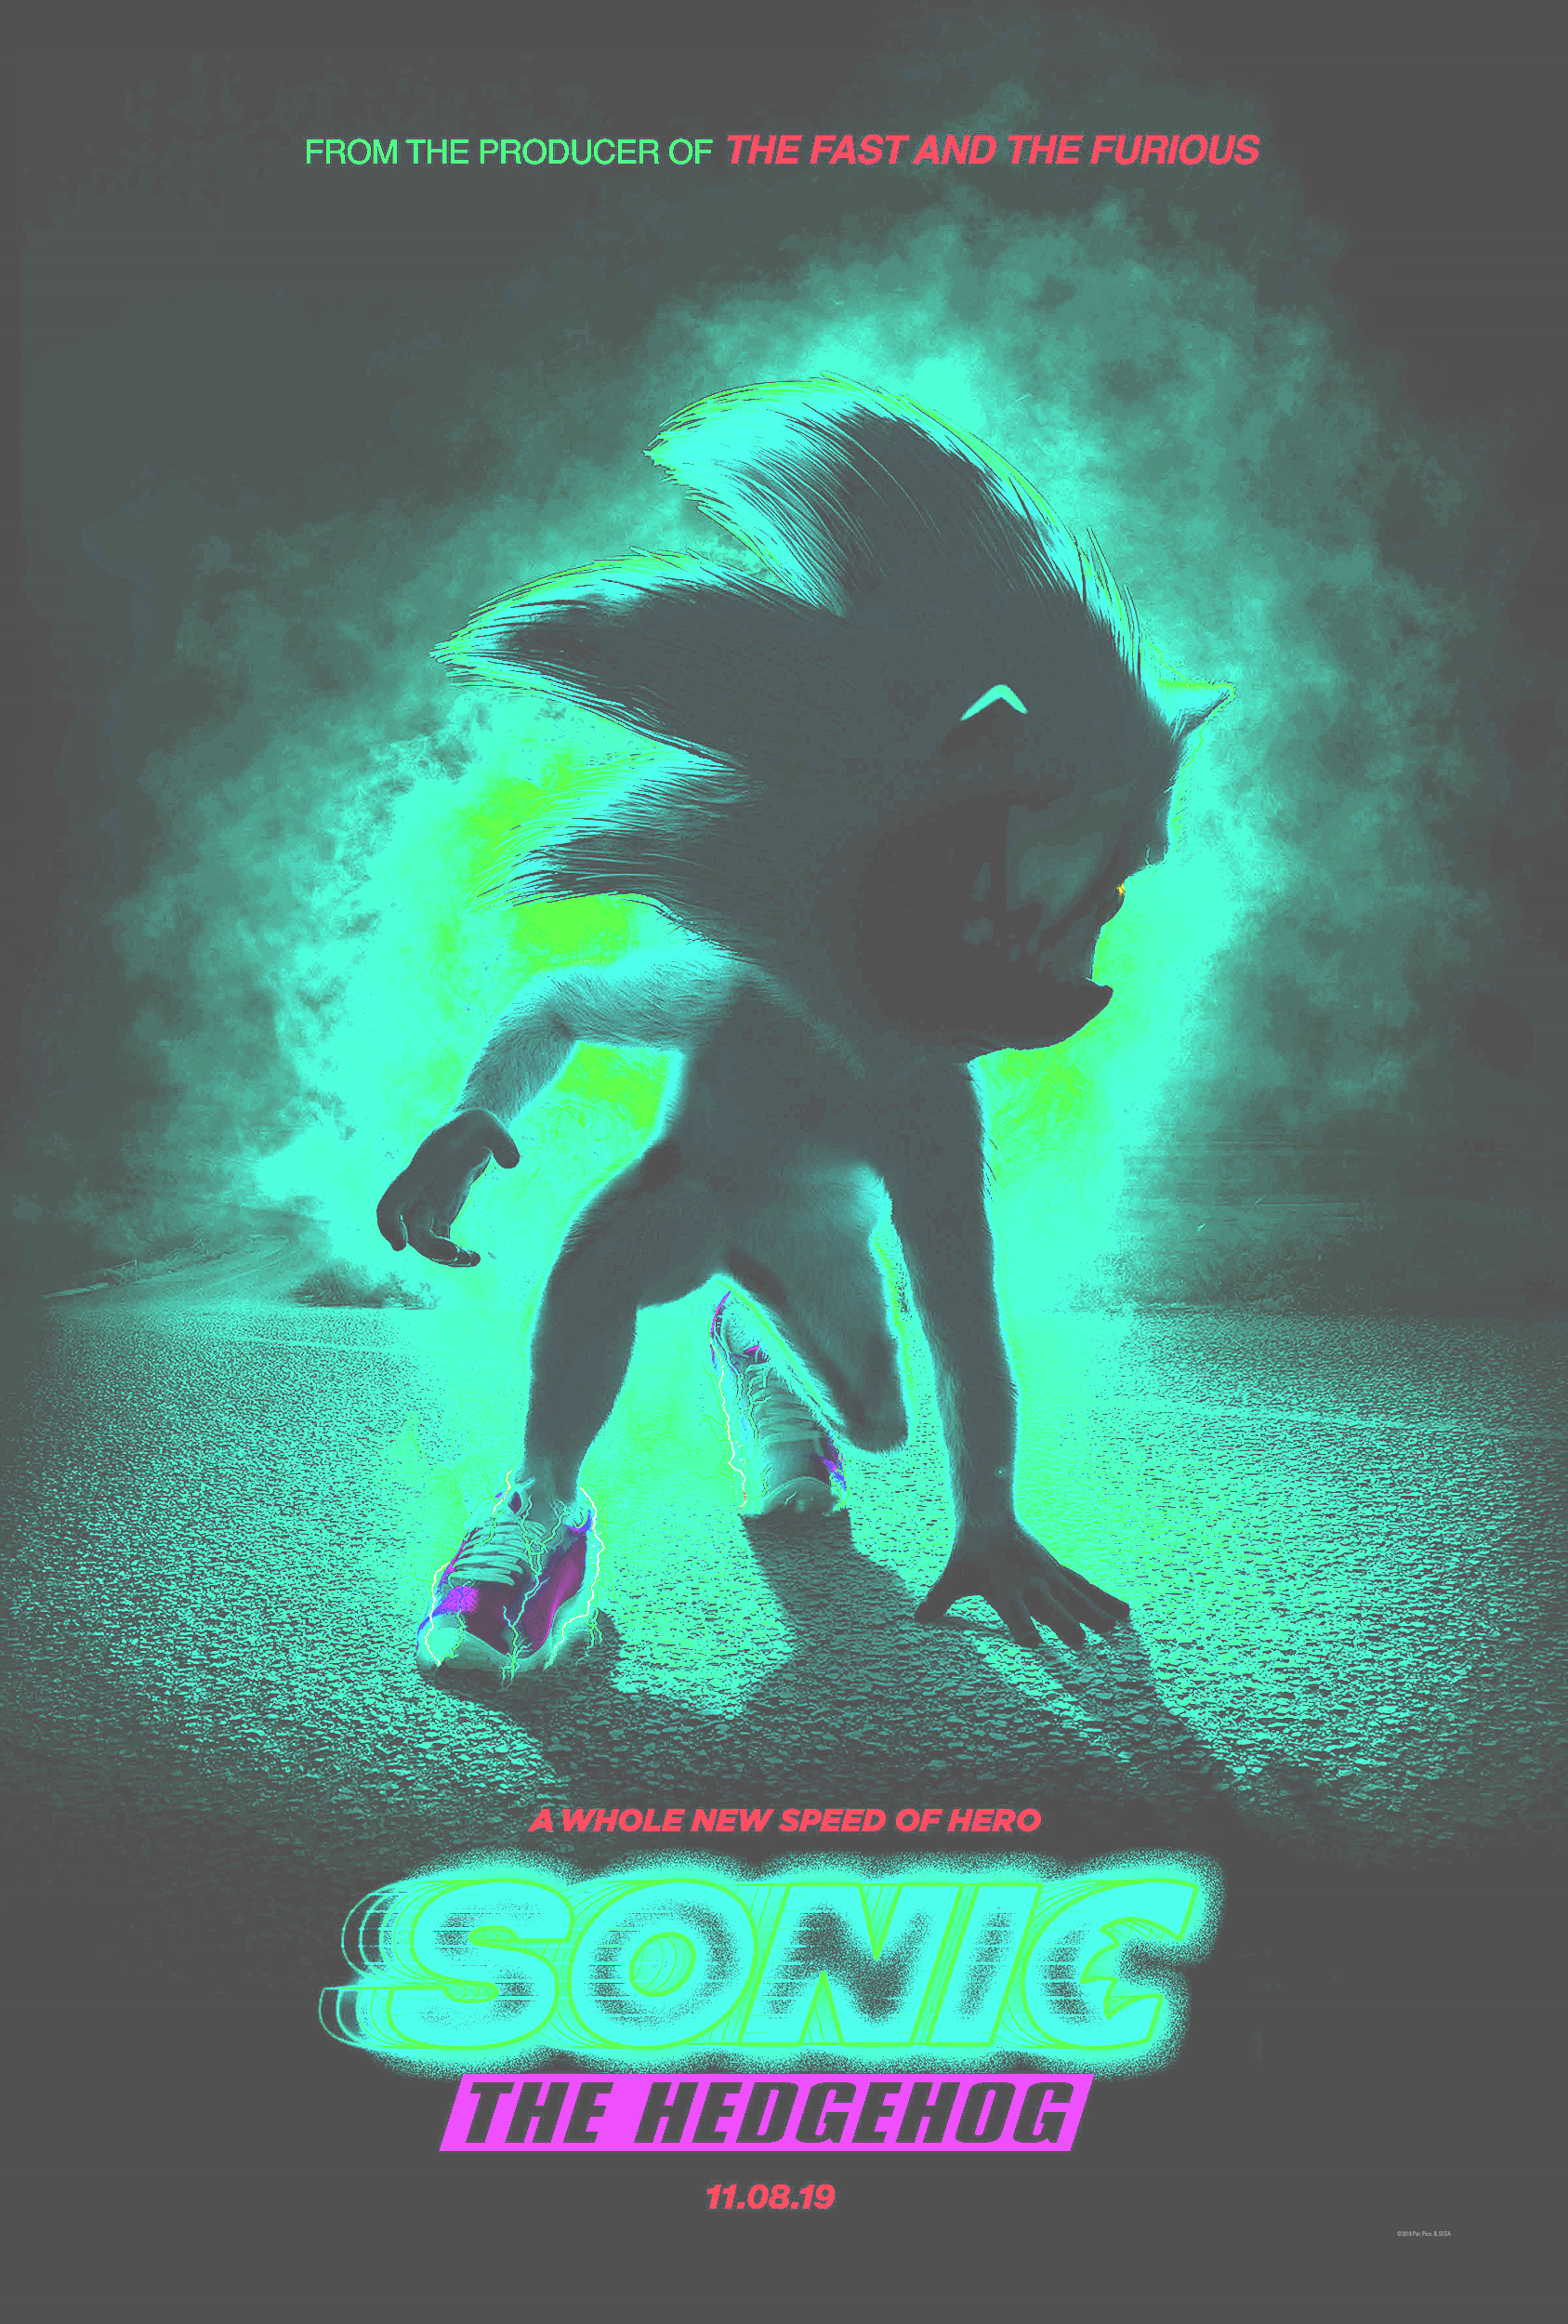 Enhancing The Sonic Movie Poster Helps It Look Slightly Less Worse